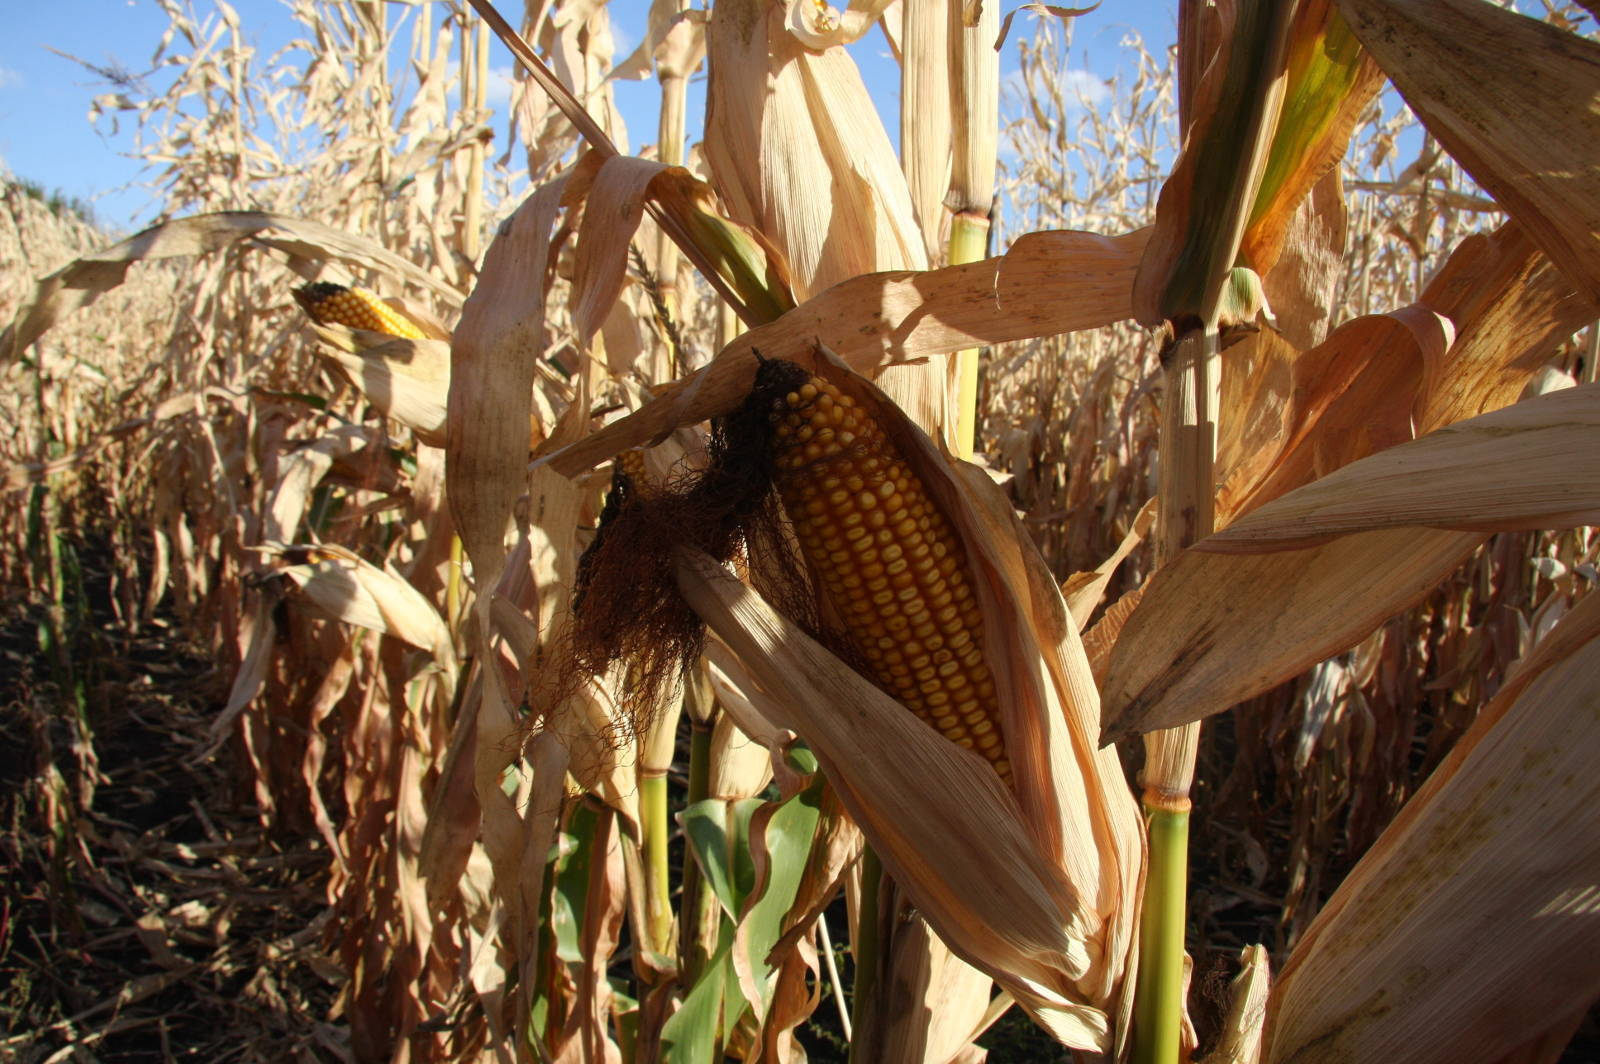 3 Major Myths About GMOs Busted